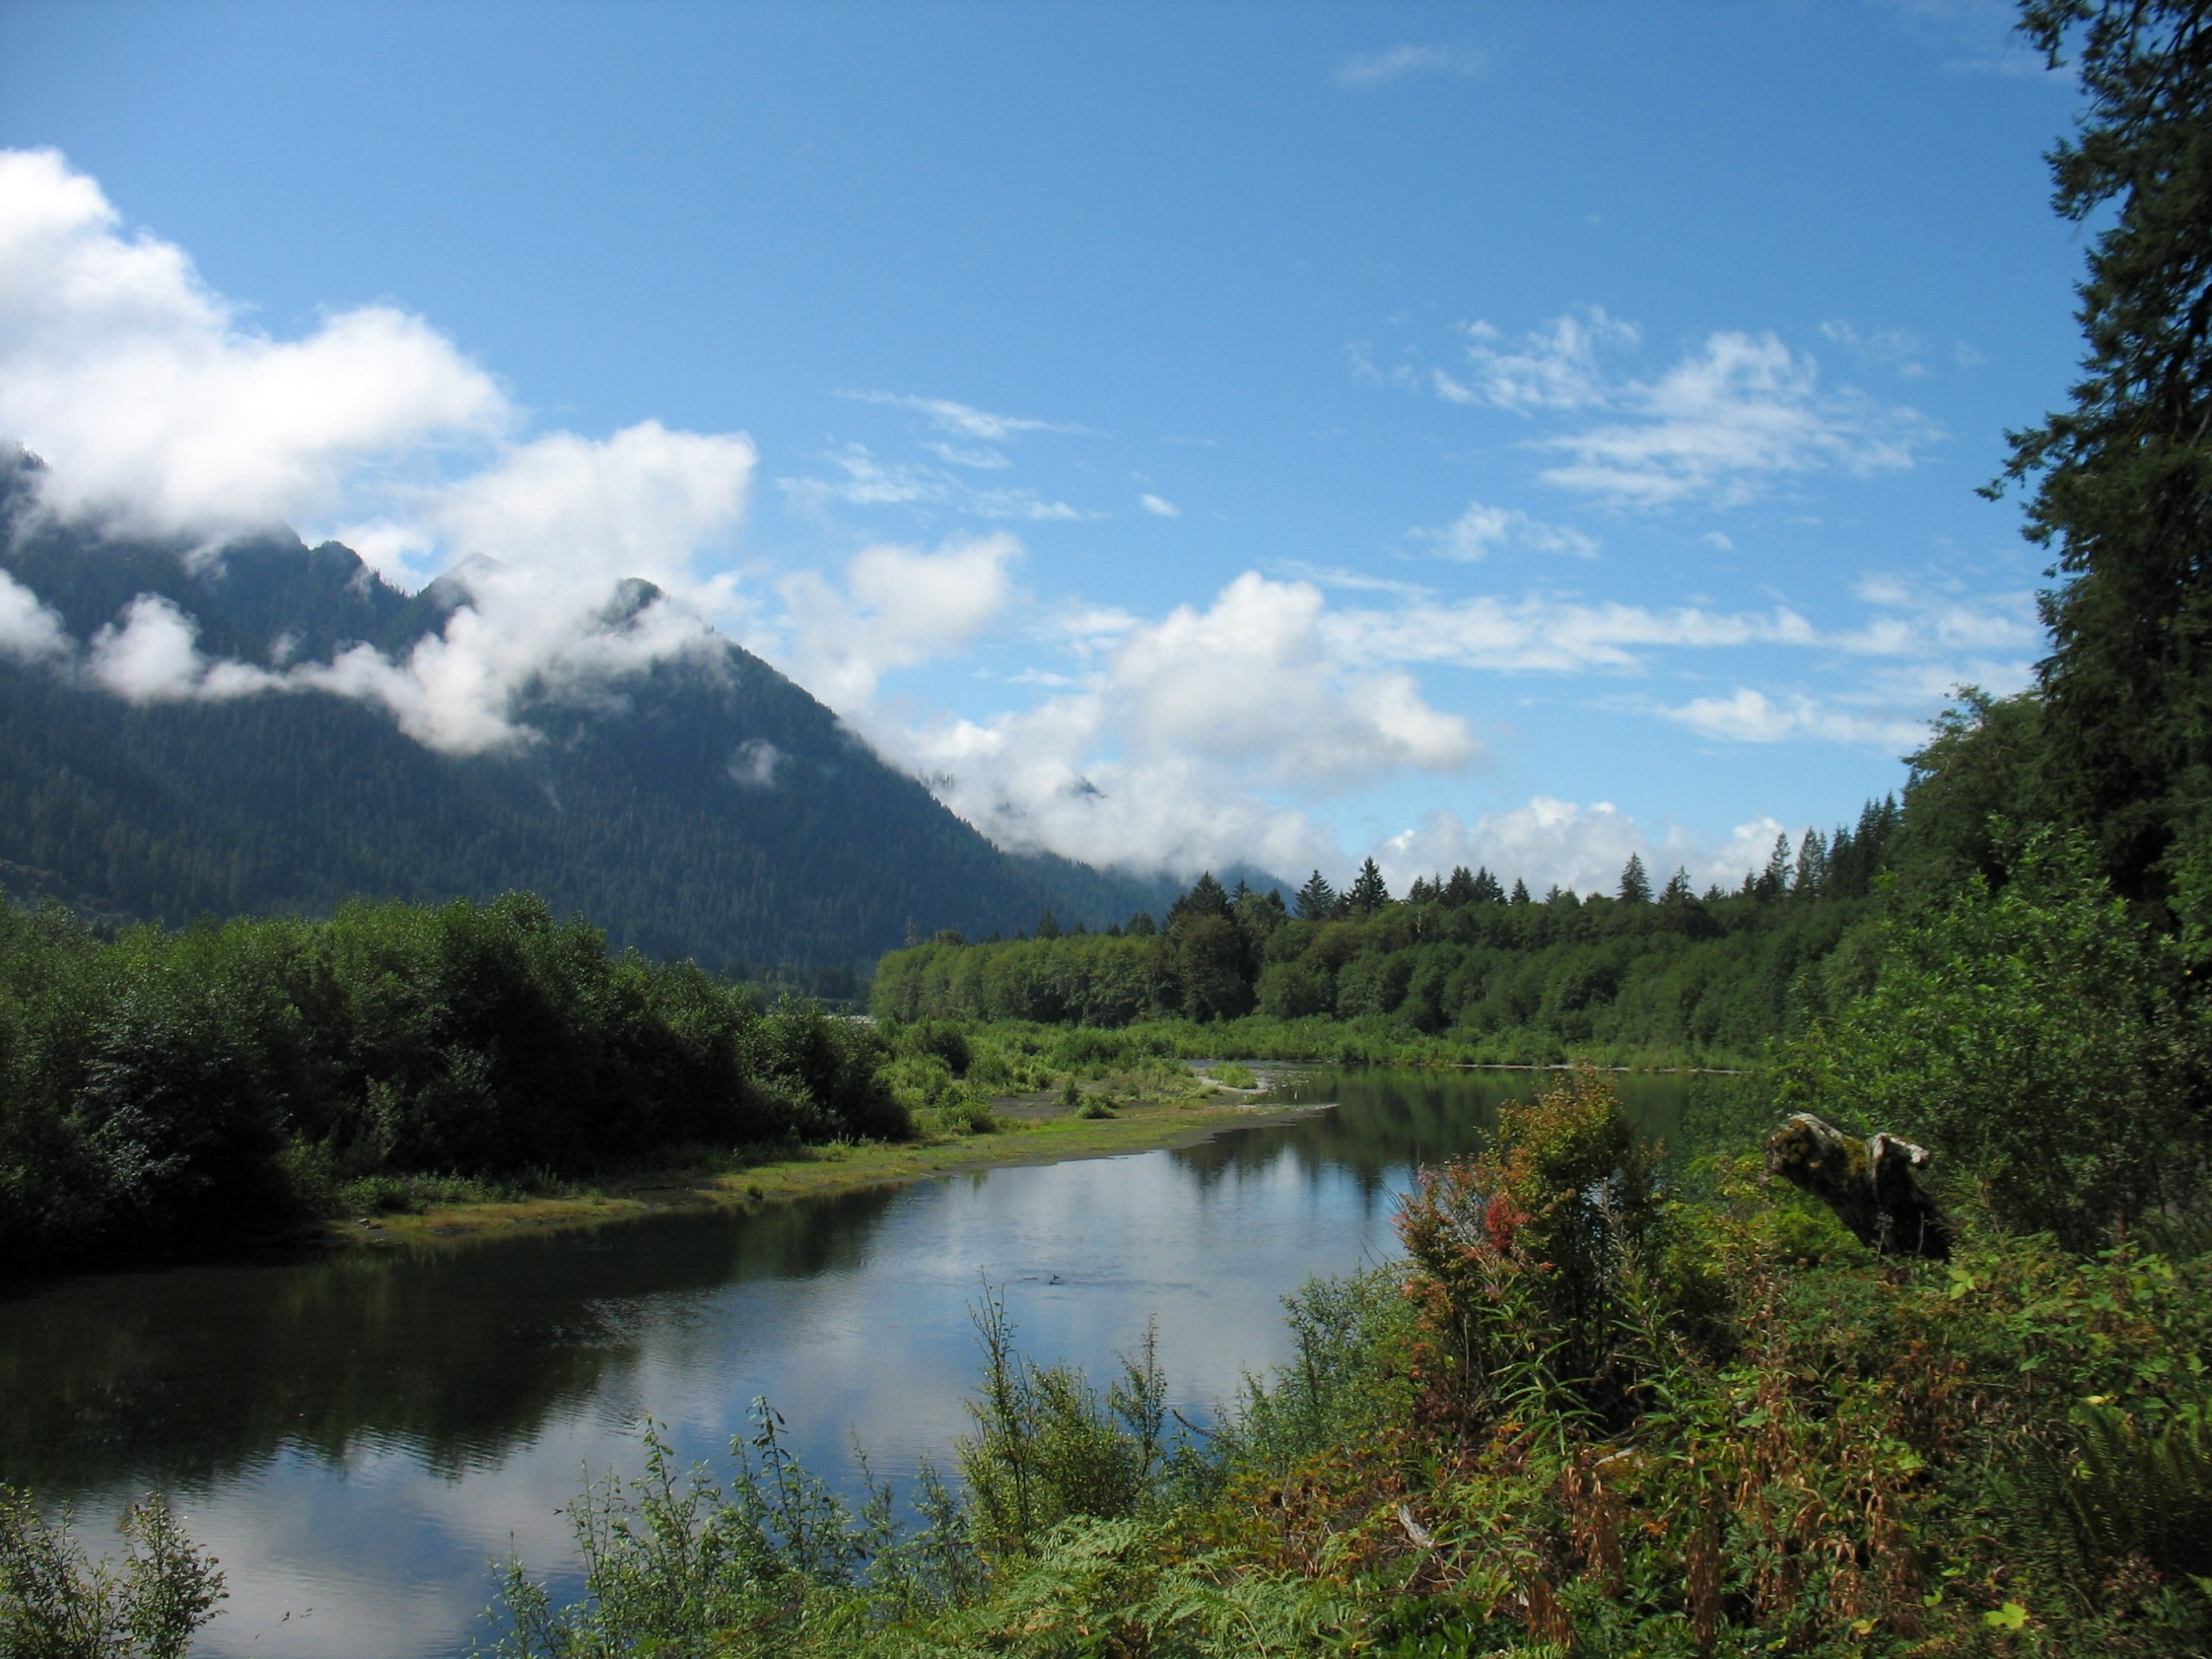 River, mountains and clouds at Olympic Peninsula